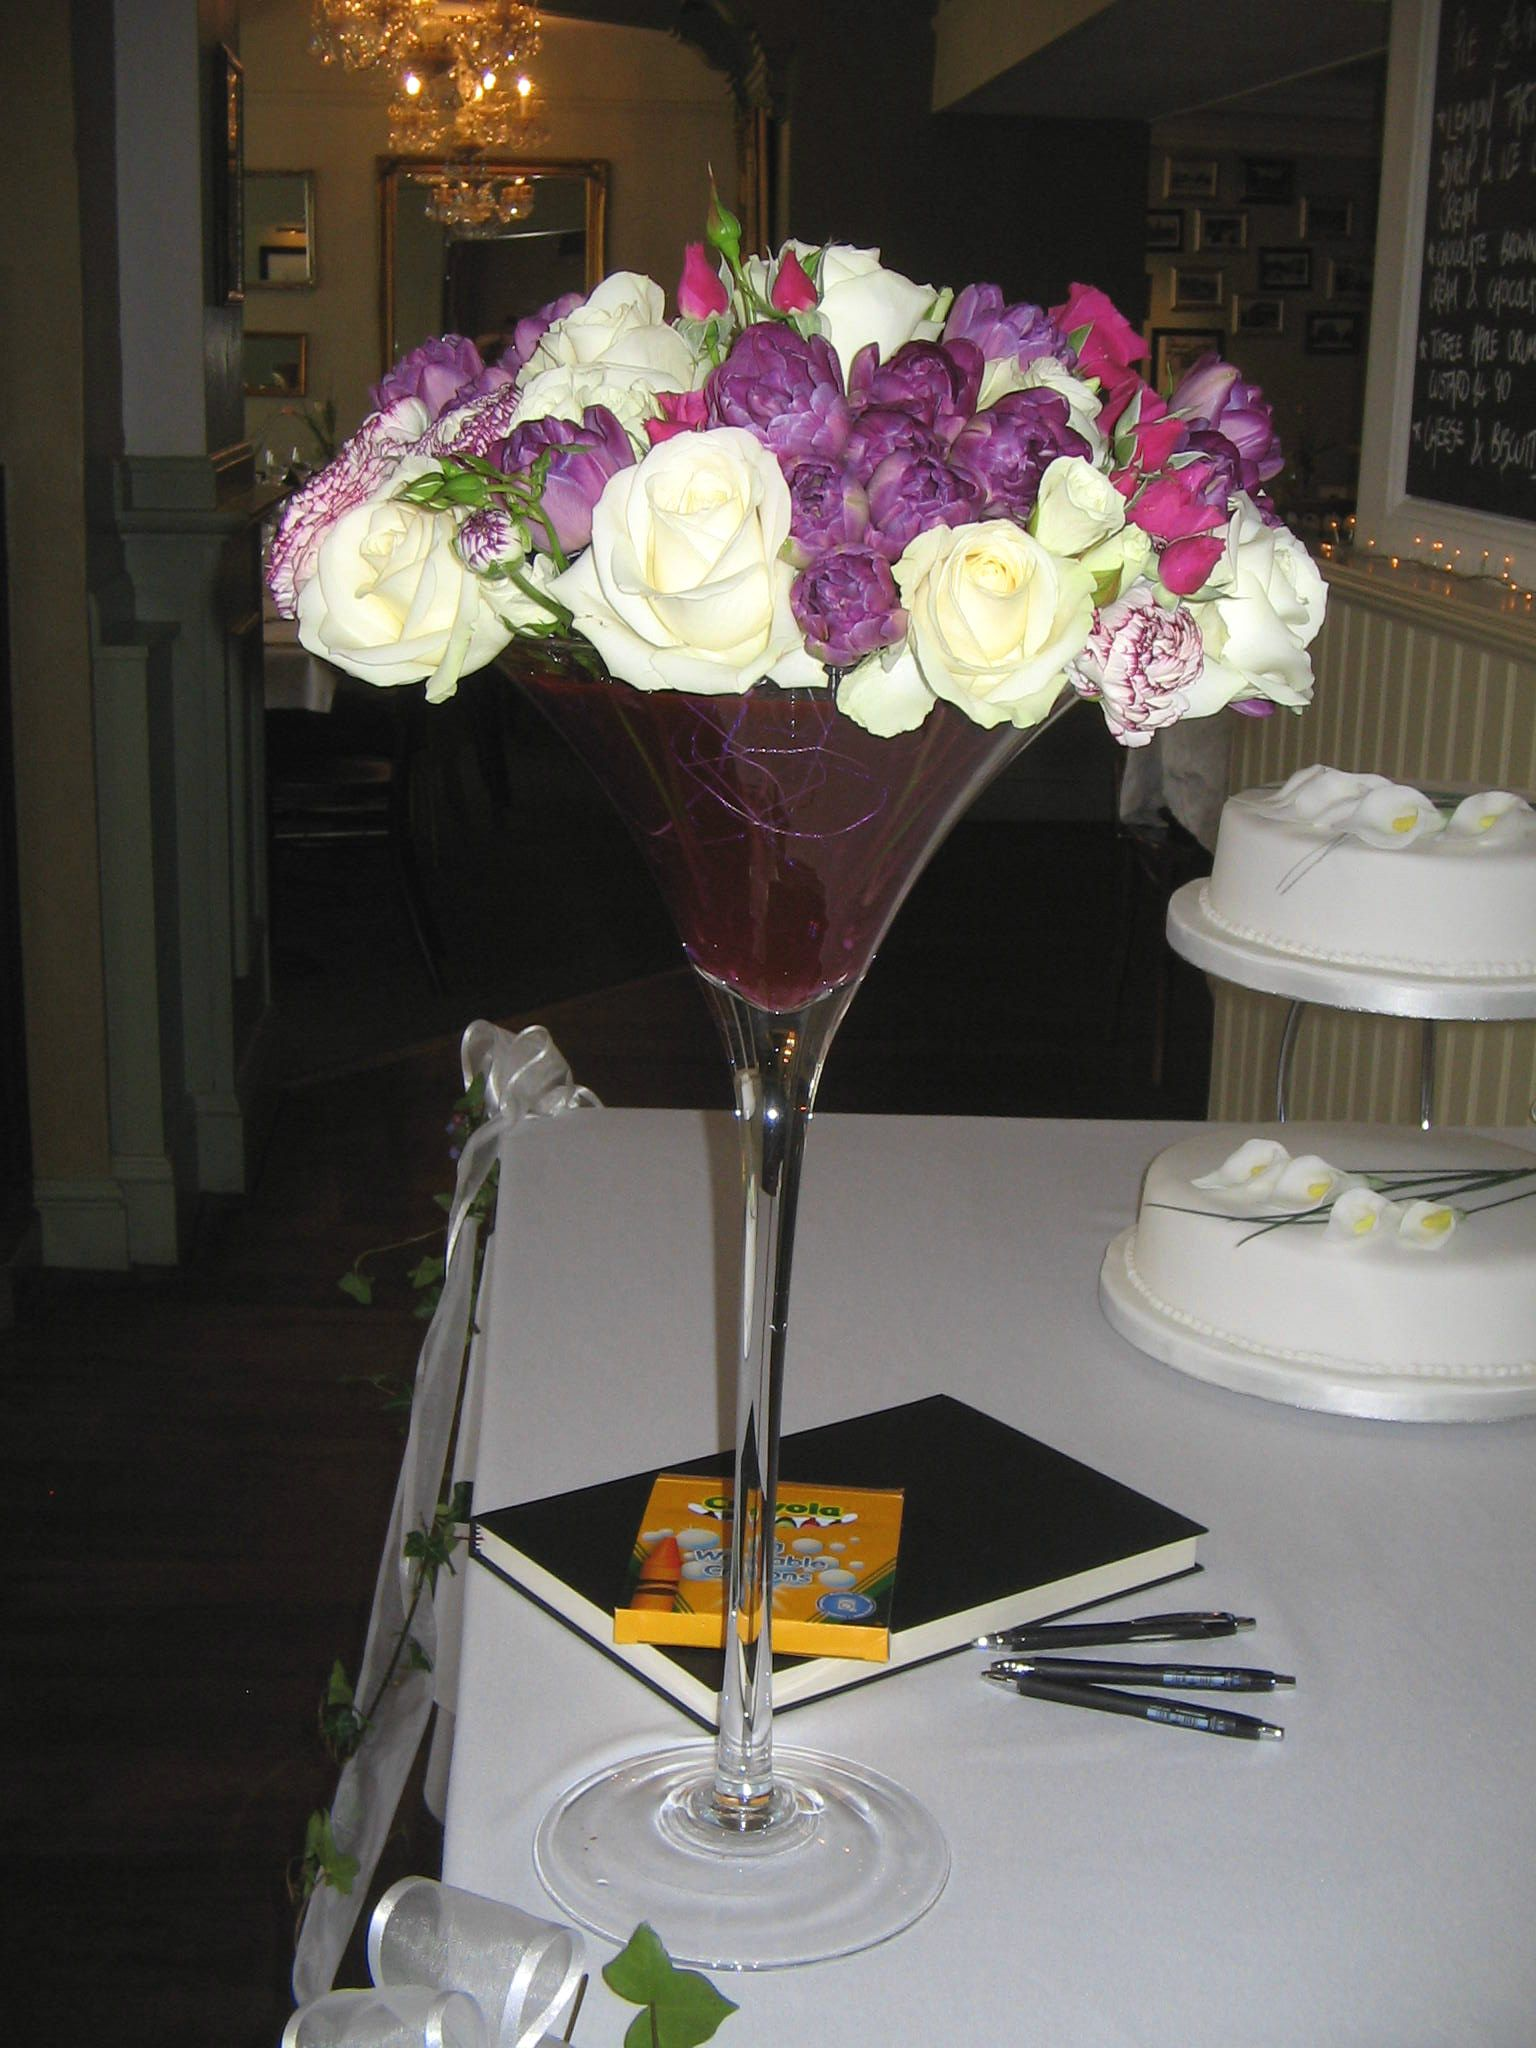 Flowers in a martini glass martini glass glass flower flowers in a martini glass martini glass floridaeventfo Images